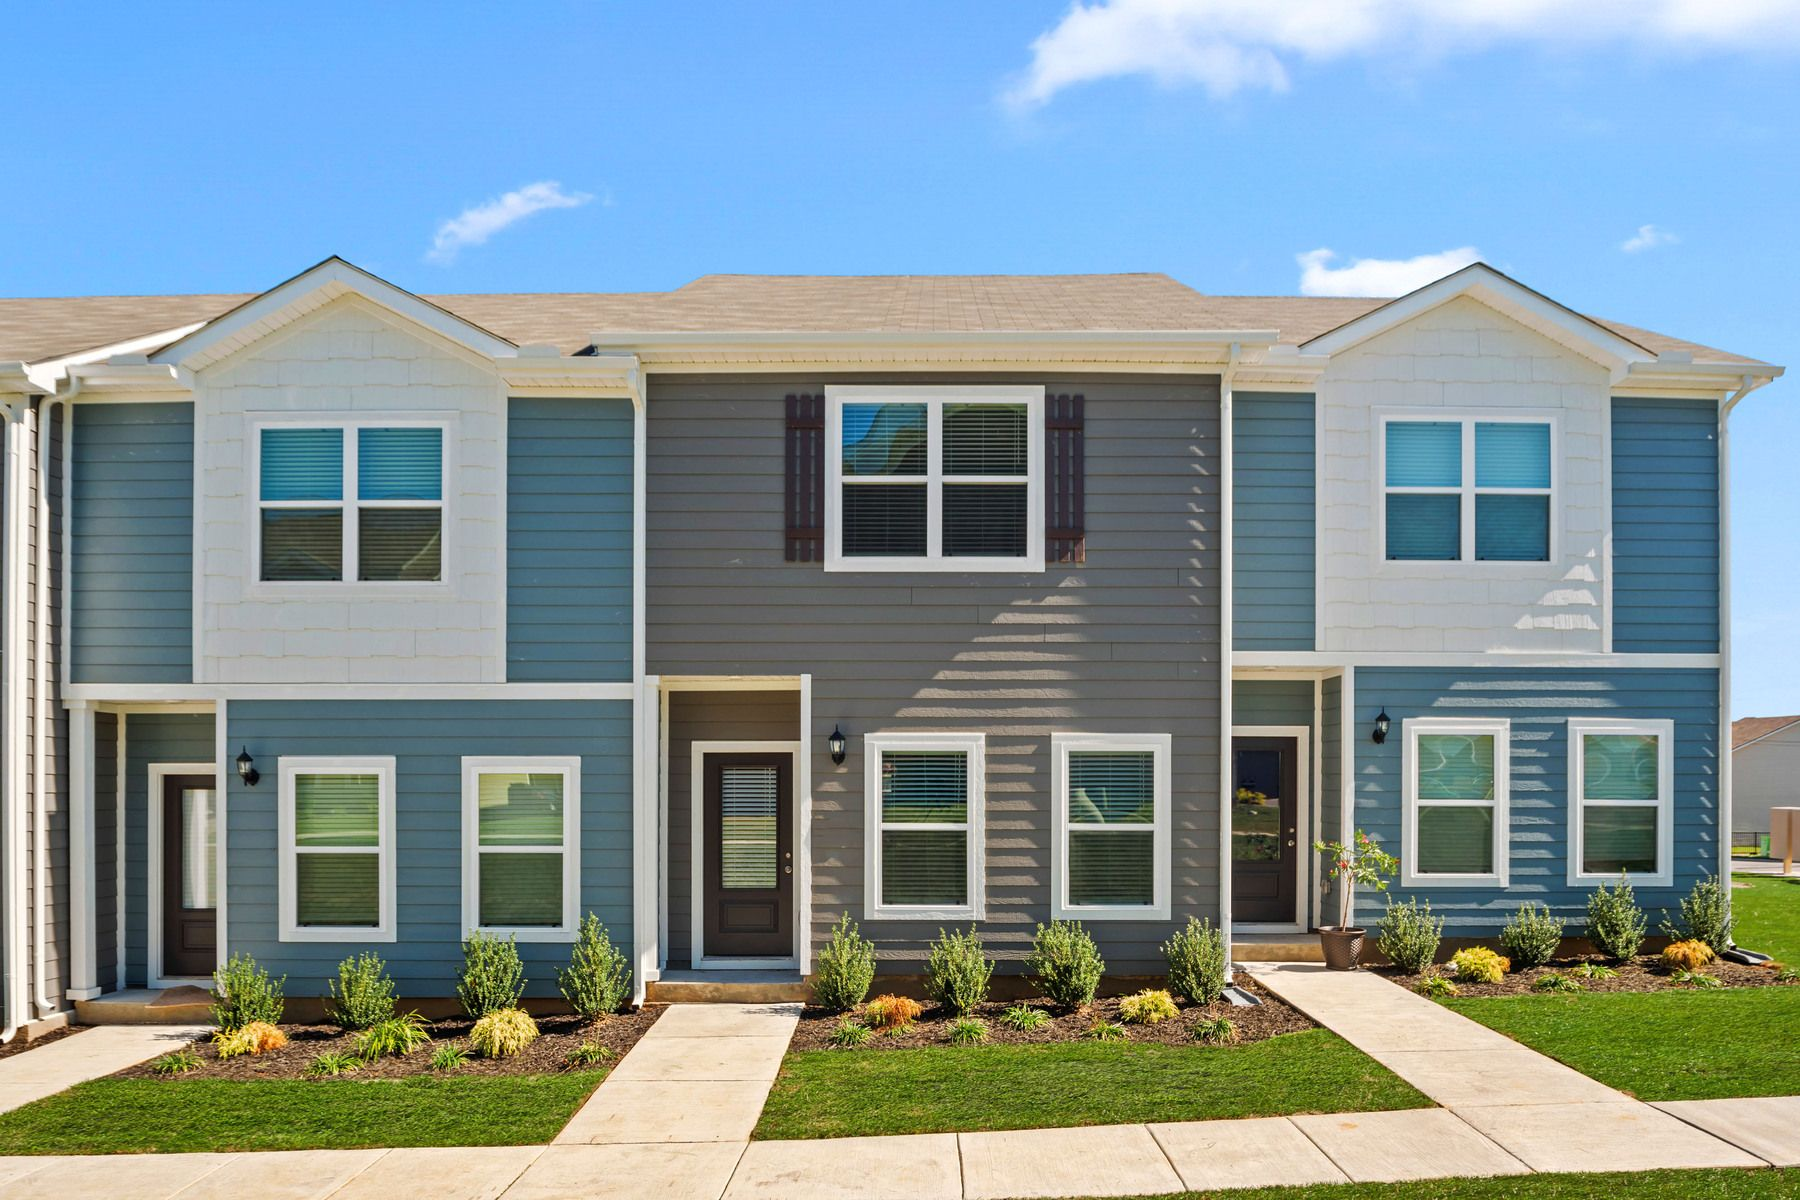 The Anderson by LGI Homes:The stunning Anderson plan at The Cottages of Lake Forest.